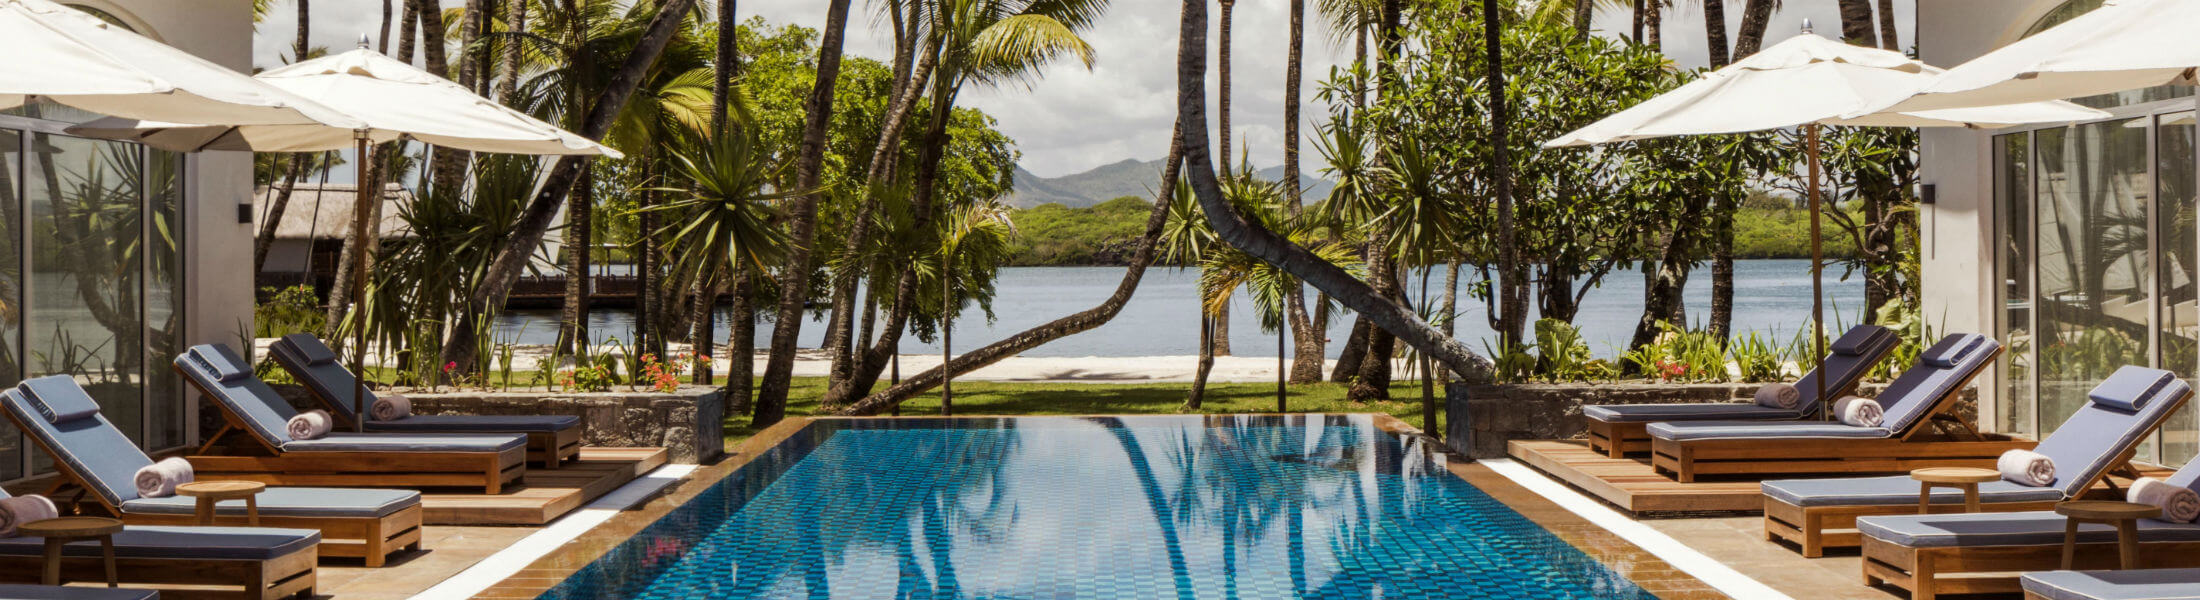 One&Only Le Saint Geran, Mauritius - Pool